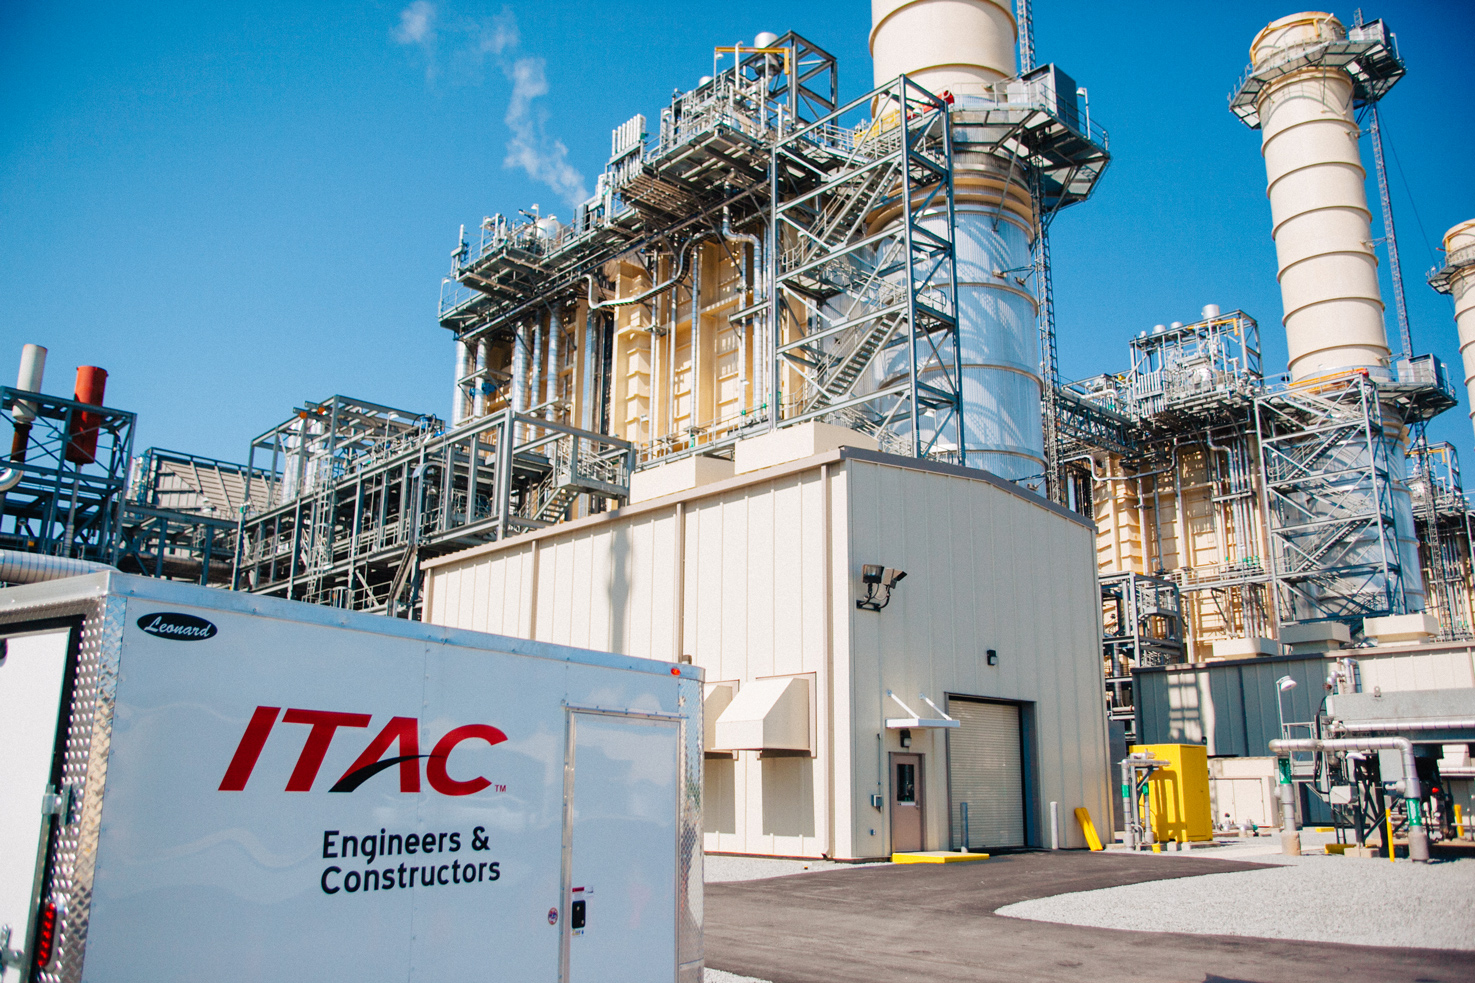 ITAC Engineering and Construction Services for Power & Utilities